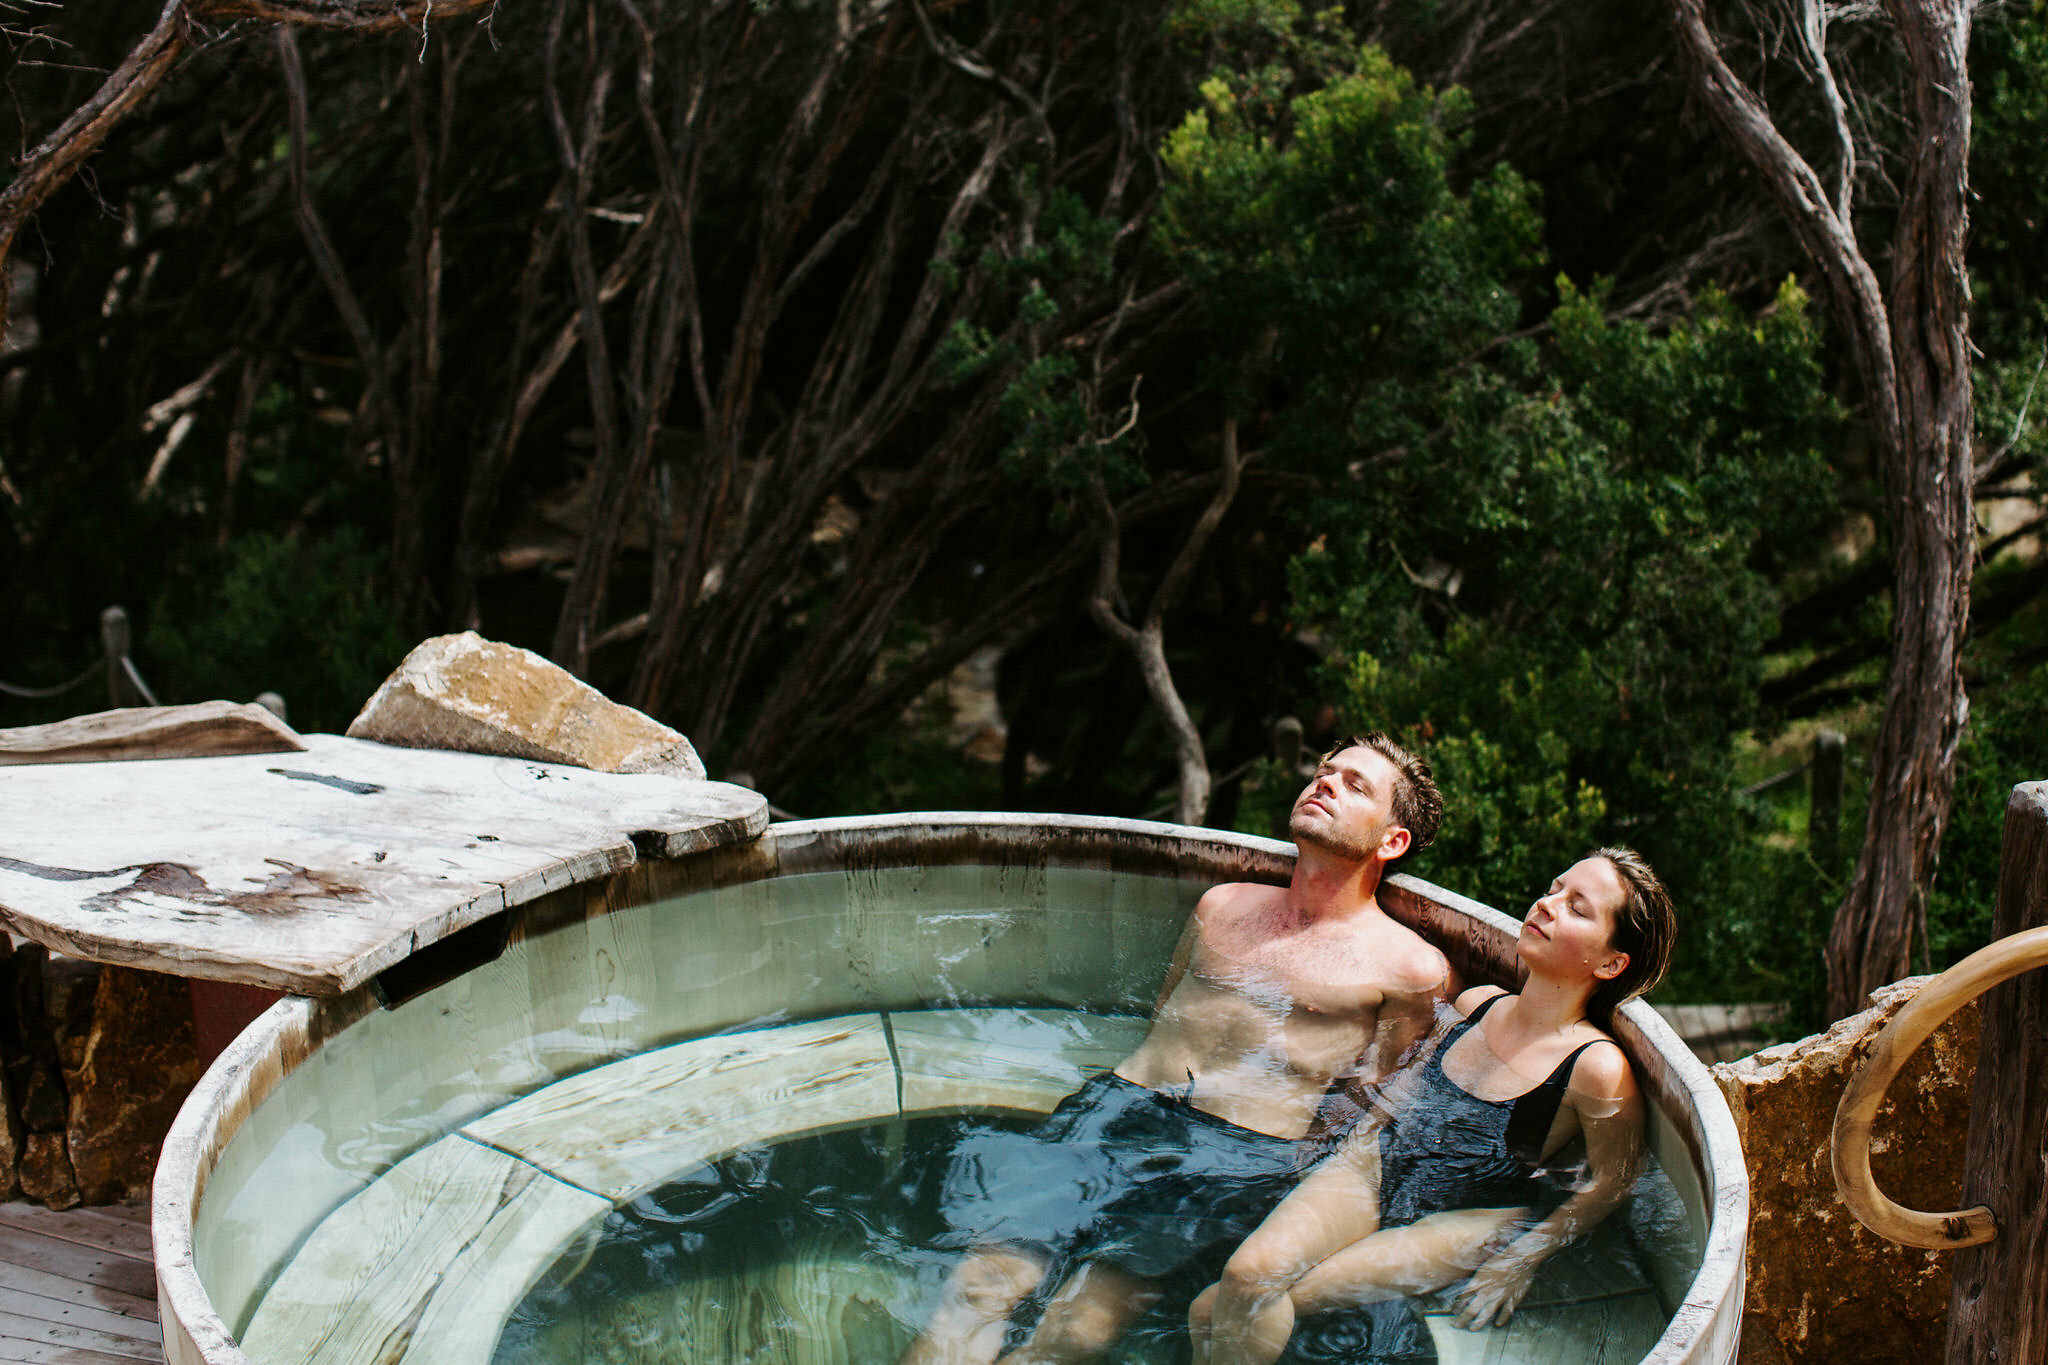 Two people bathing in a private pool at Peninsula Hot Springs